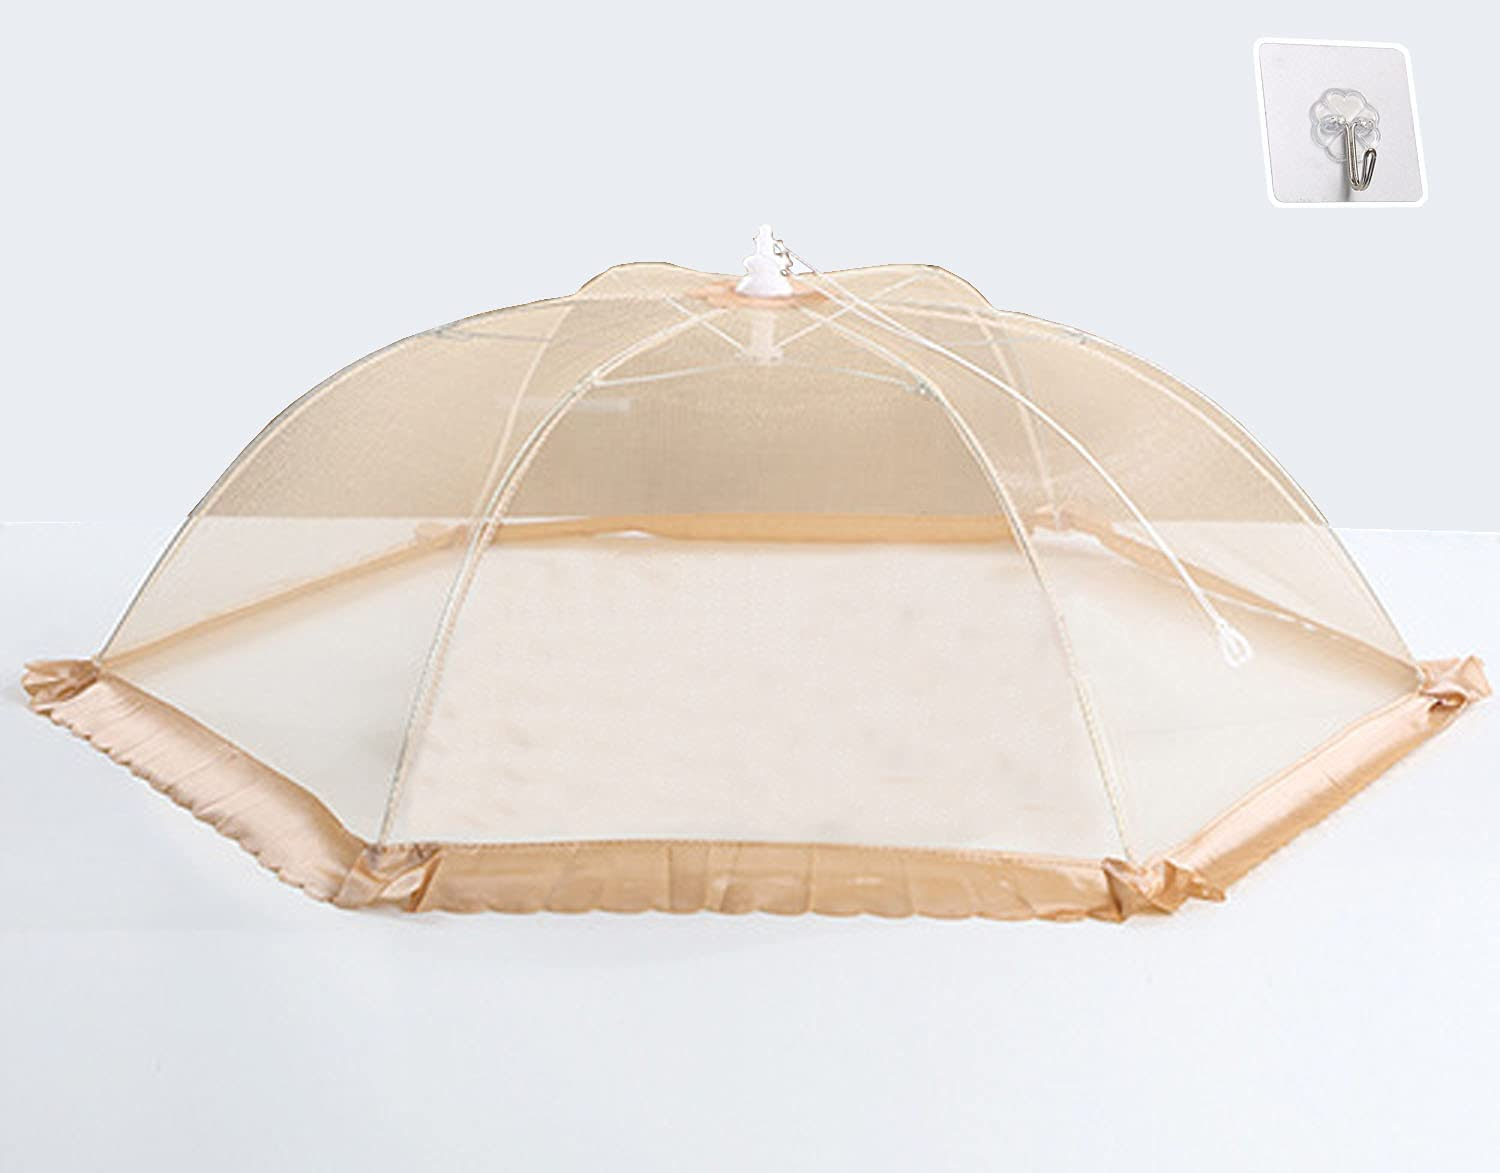 TQHY for Food Cover,Dish cover,Fruit cover With punch-free hook,Pop-up mesh food cover tent, suitable for home, outdoor, tent, party picnic, barbecue, reusable and foldable (Light coffee style)